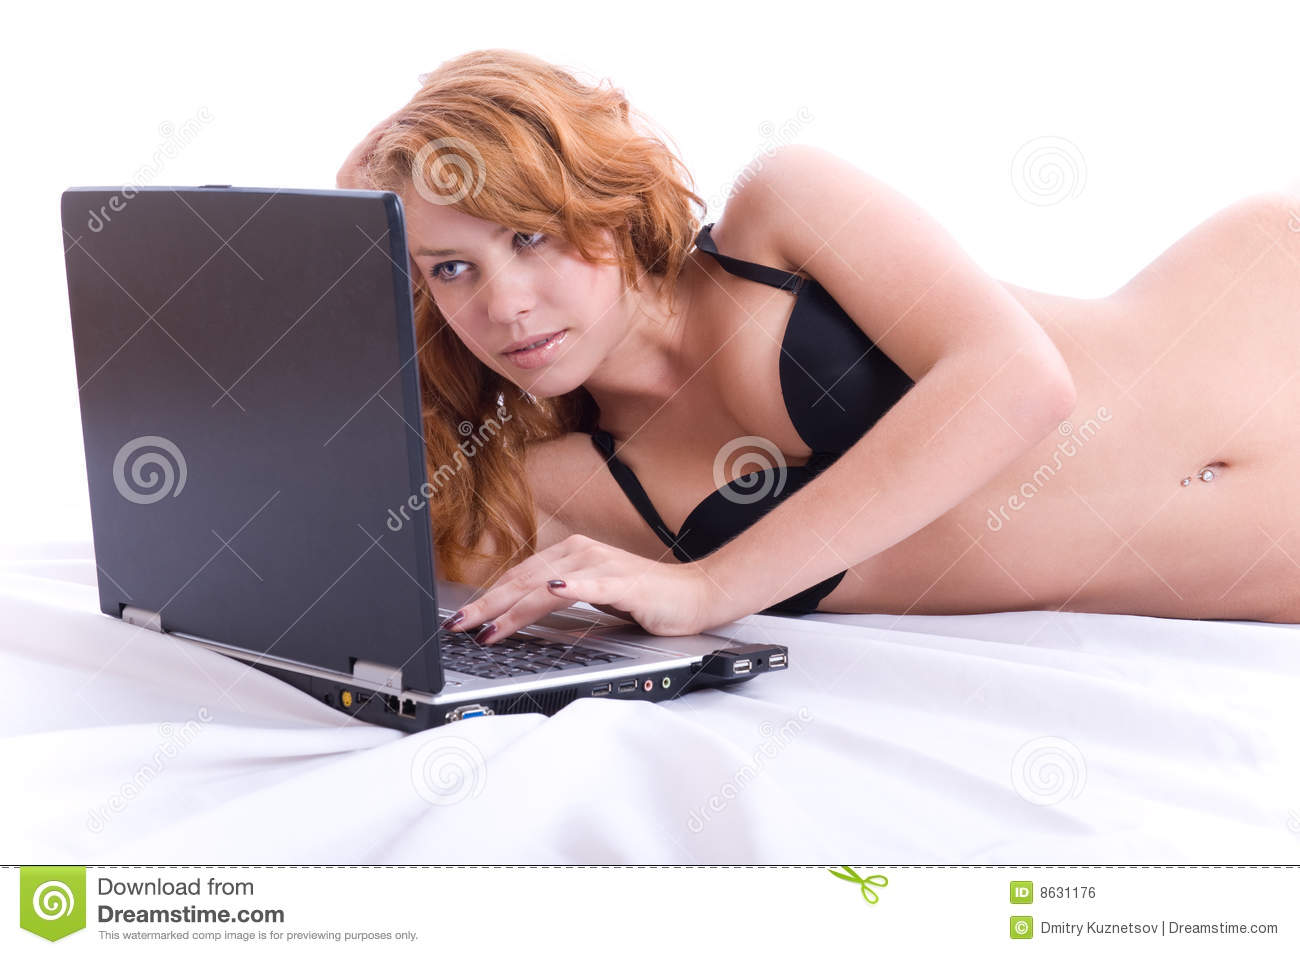 Online chating with sexy girls